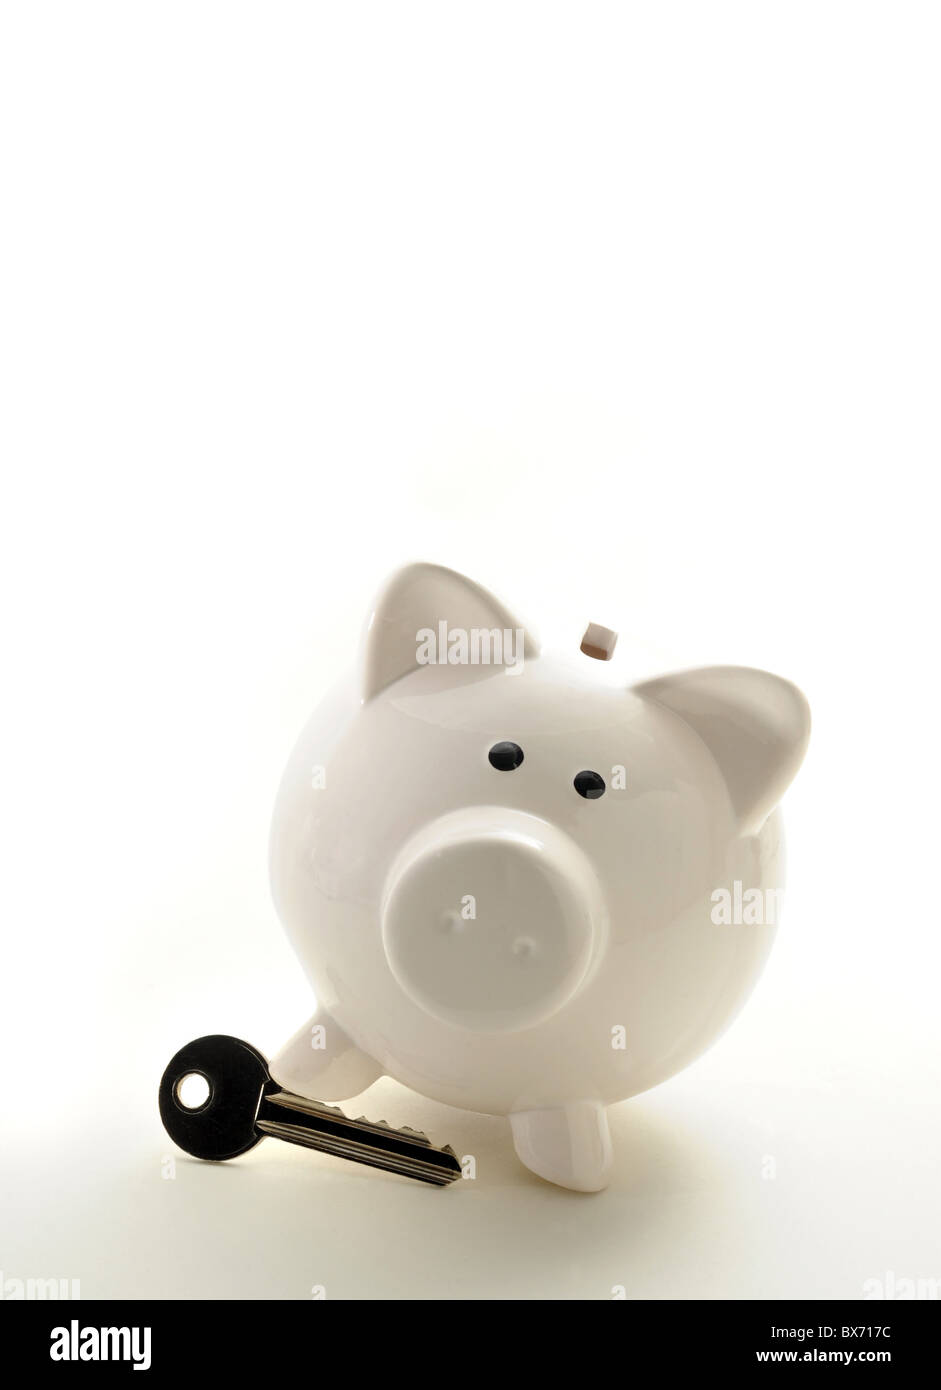 PIGGYBANK WITH HOUSE KEY RE HOMES BUYERS MORTGAGES PROPERTY MARKET ETC UK - Stock Image